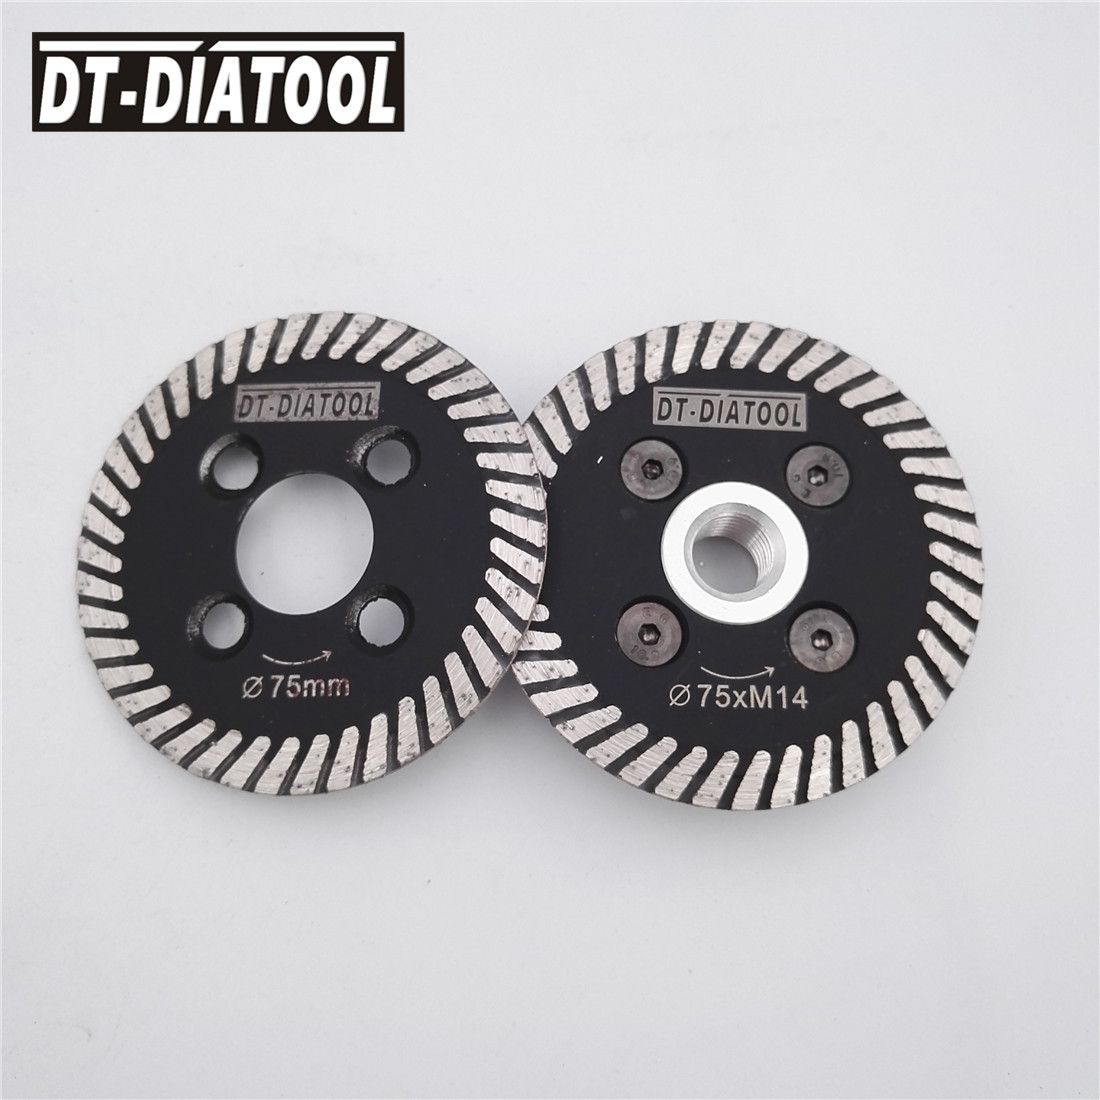 DT-DIATOOL Diameter 75MM Dry And Wet Hot Pressed Mini Turbo Diamond Carving Disc Cutting Saw Blade With Connection M14 Flange